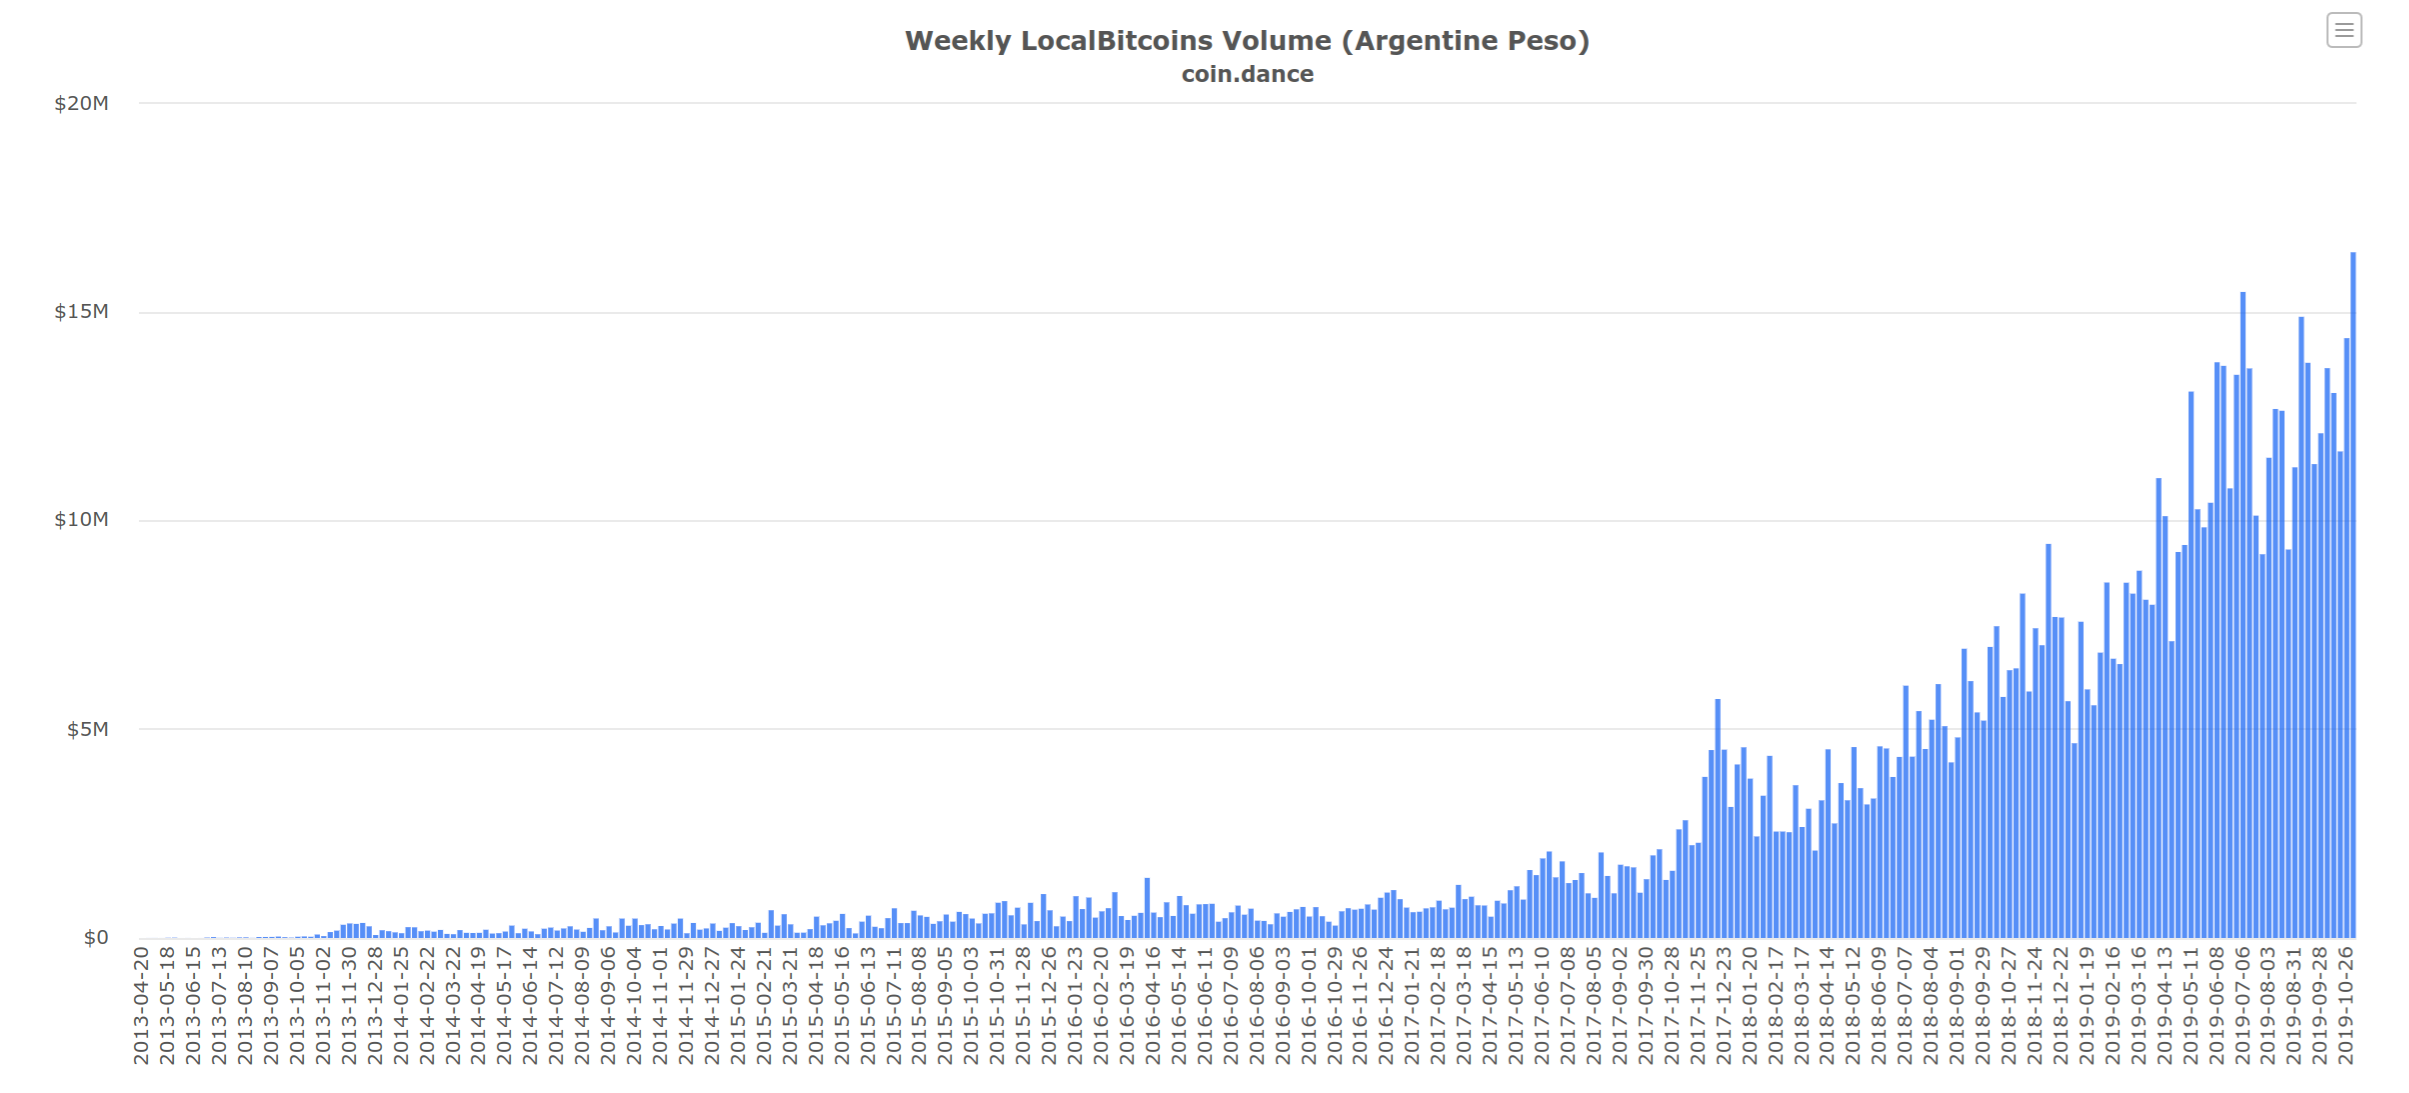 Bitcoin Shatters Trading Volume Record on Peer-to-Peer Crypto Platform in Argentina As BTC Trades At 38% Premium